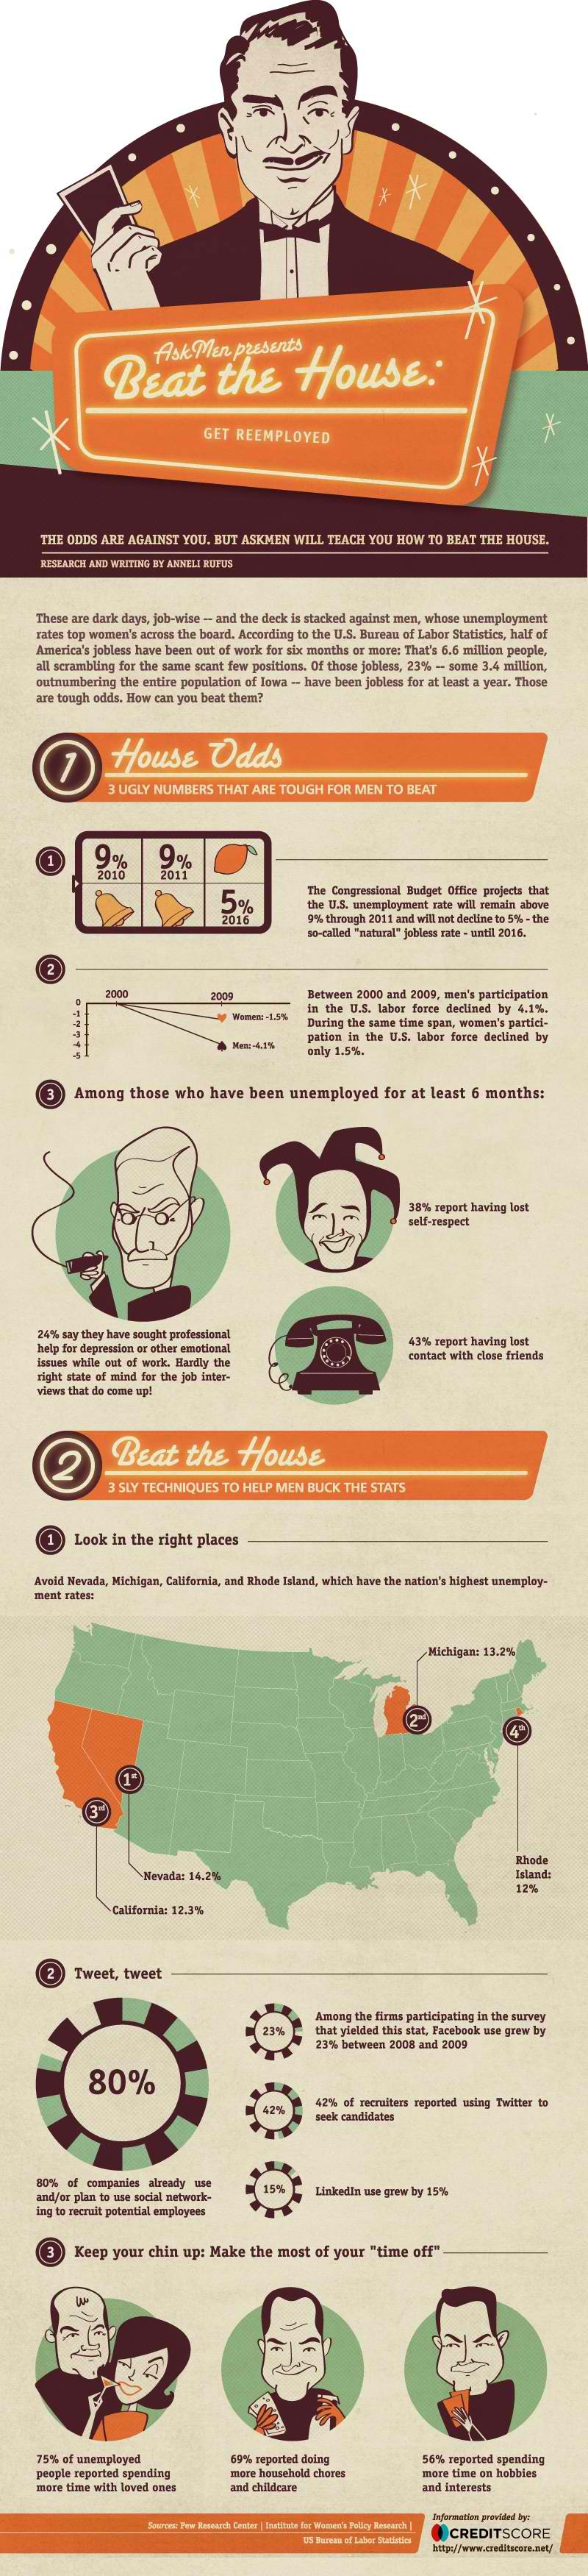 Beat the house get reemployed infographic beats new day